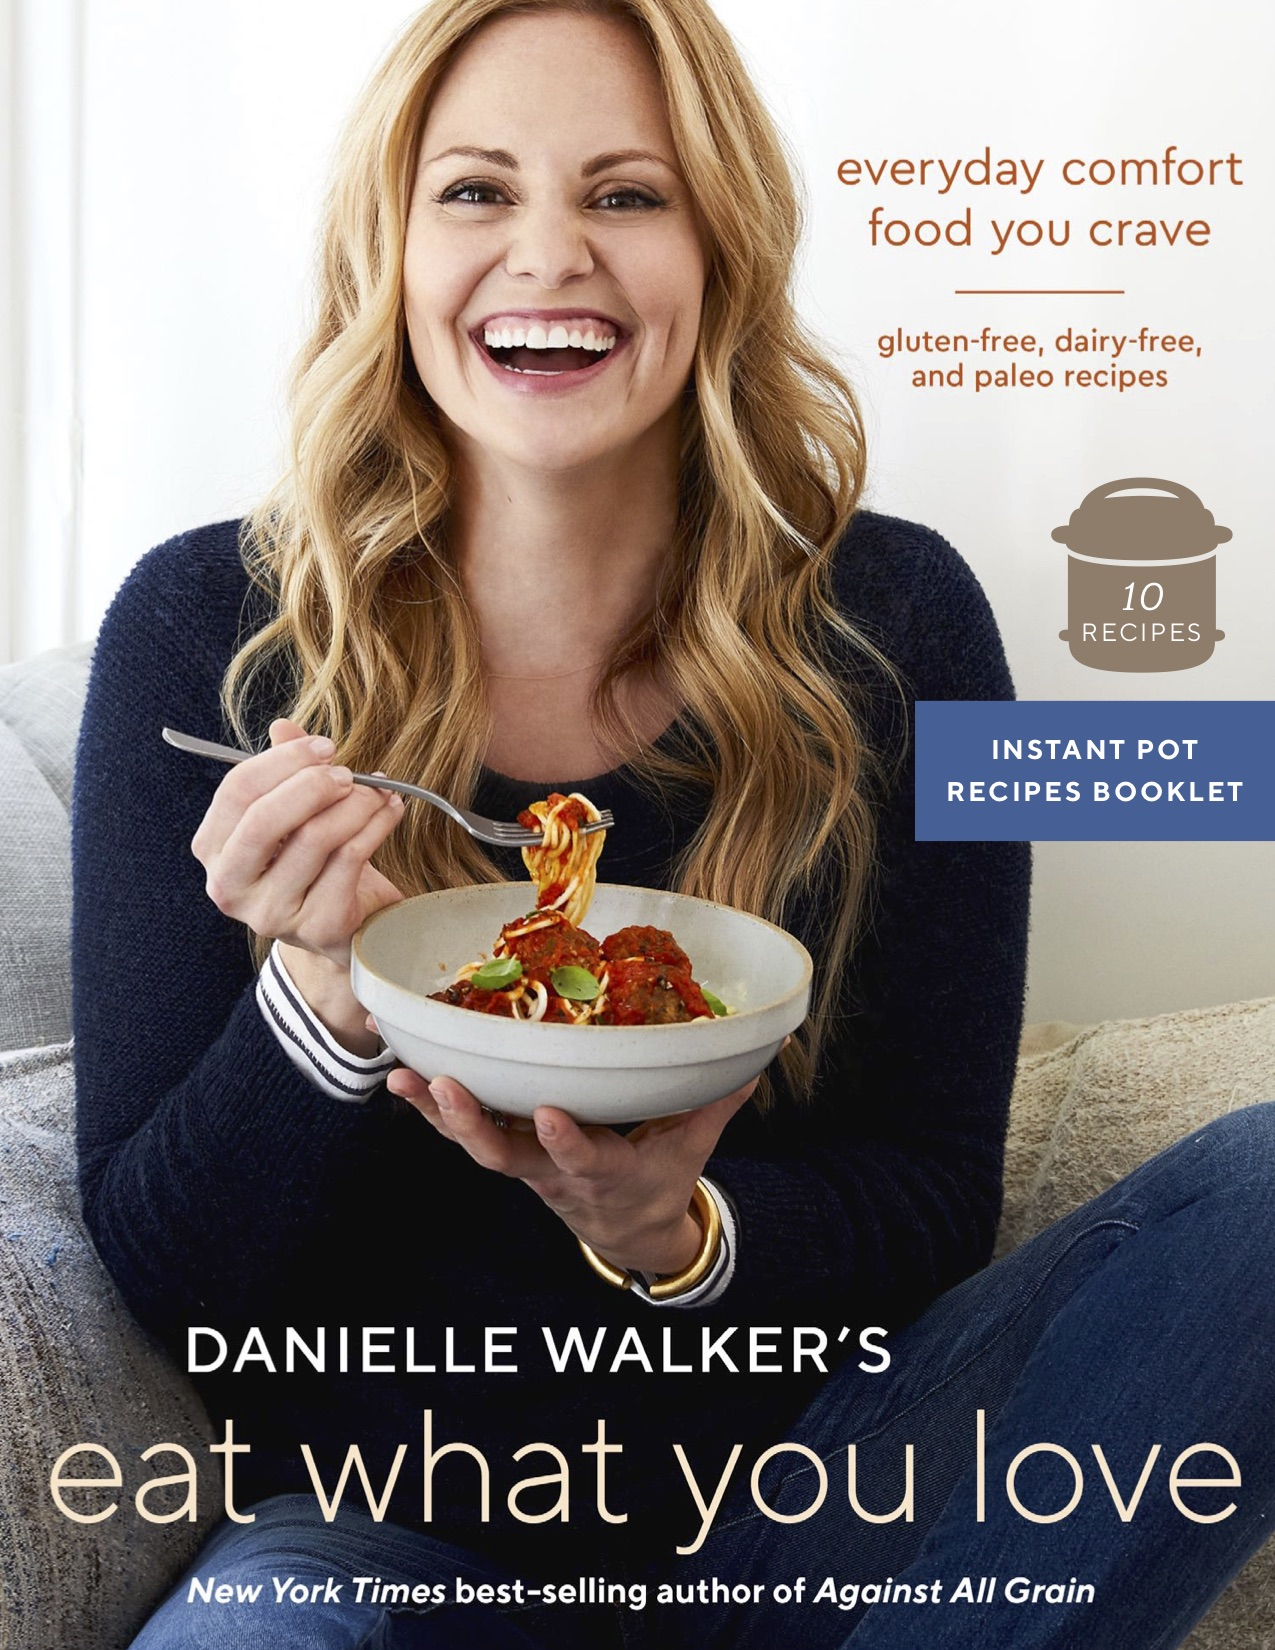 Danielle Walker Exclusive  Instant Pot Booklet Cover.jpg